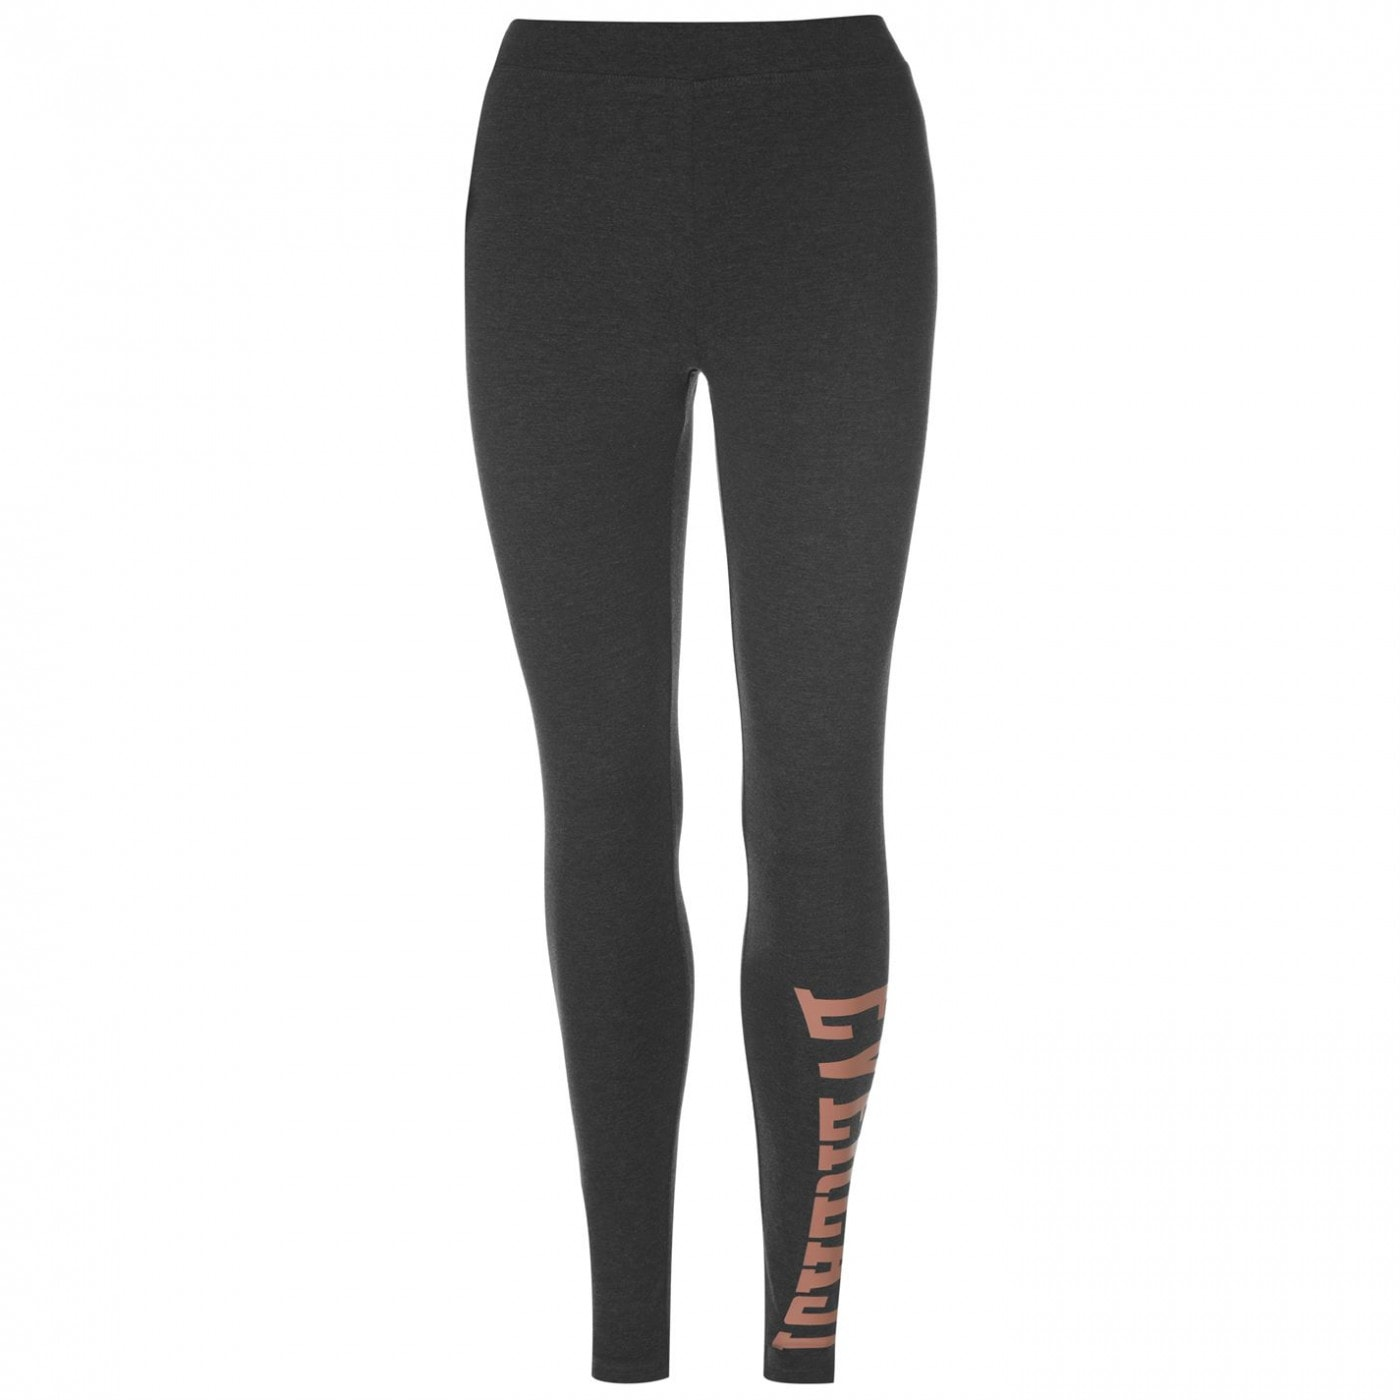 Everlast Leggings Ladies